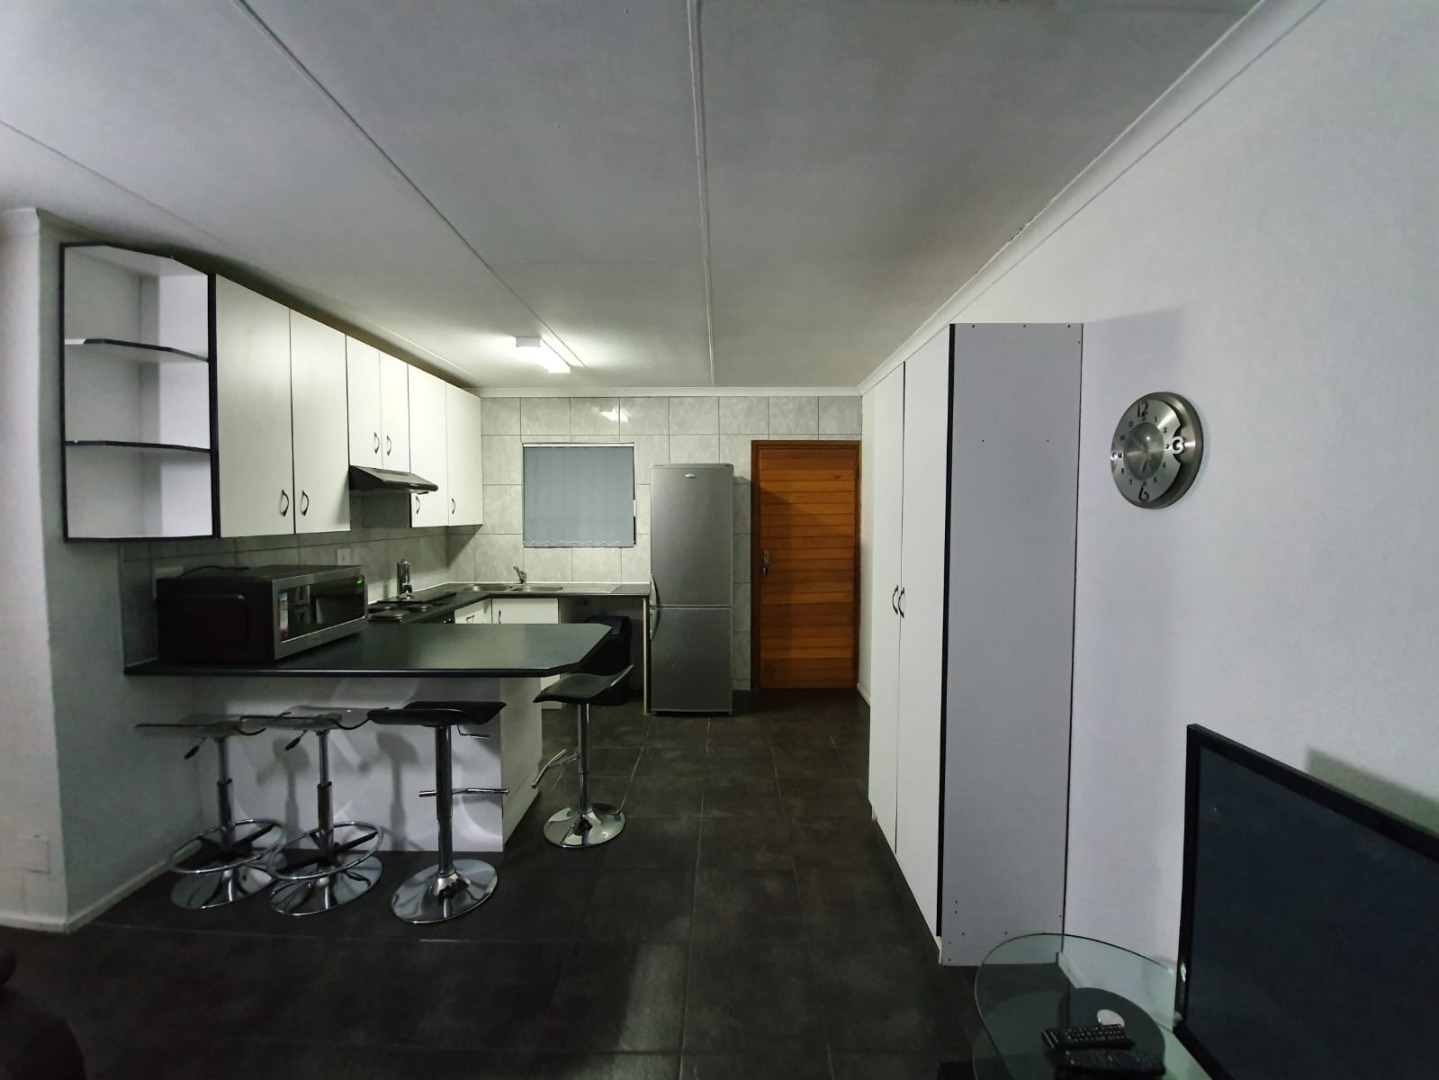 3 Bedroom Apartment / Flat For Sale in Peacehaven